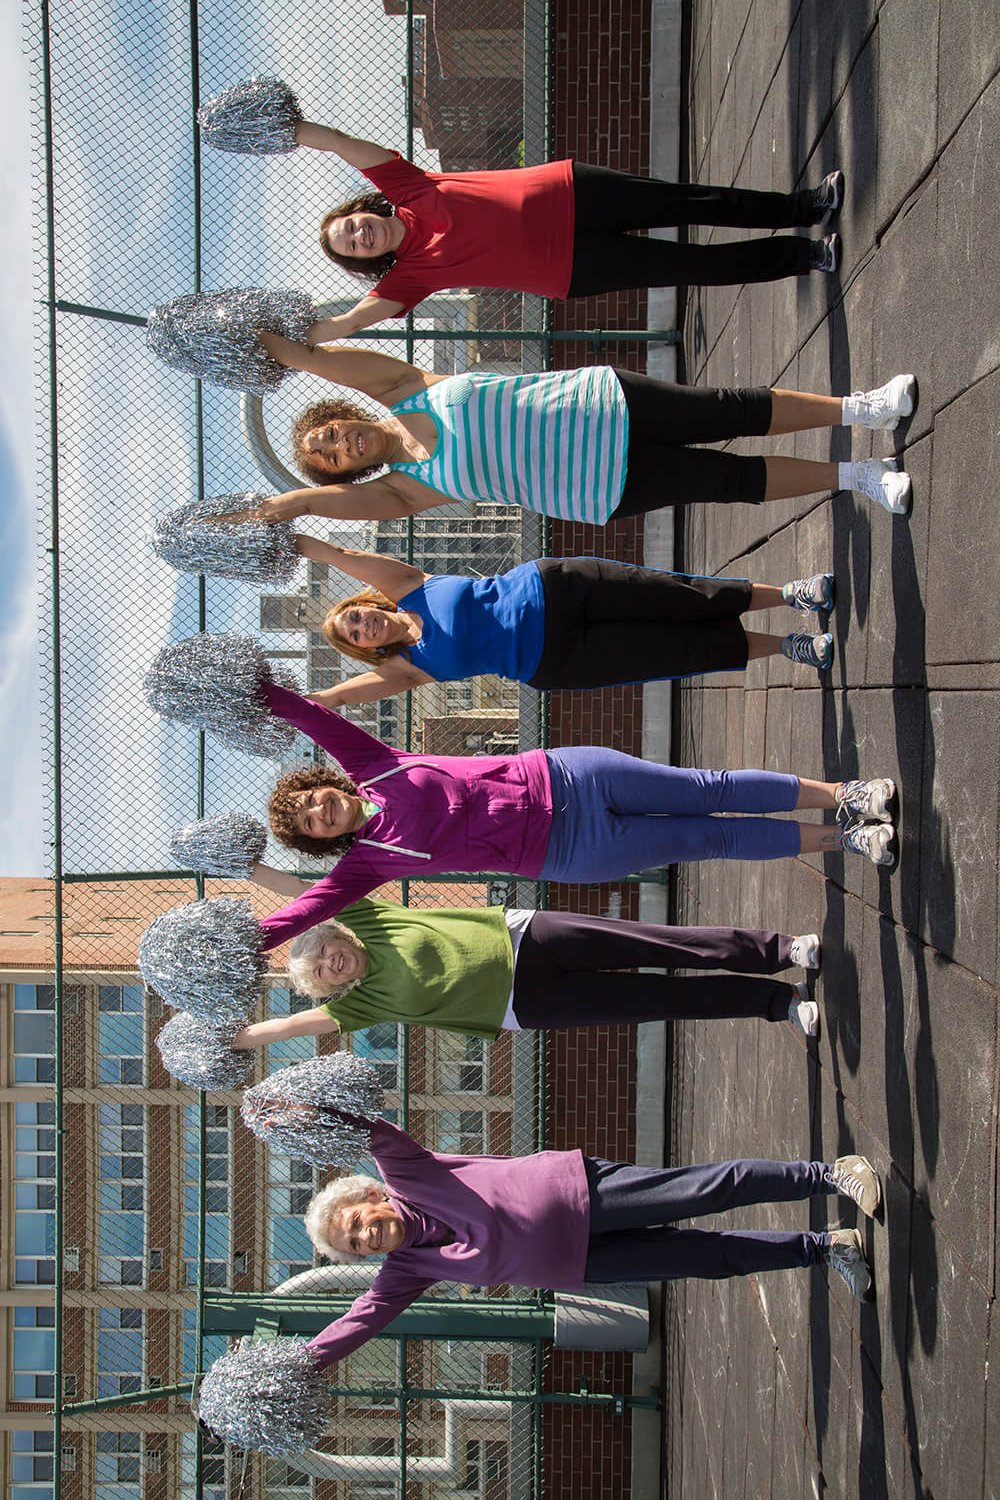 A photograph, exterior on a sunny day - 6 smiling elder women in workout clothes stand in formation on the rooft of a building in a big city, holding silver cheerleader pom-poms over their head, about to cheer.